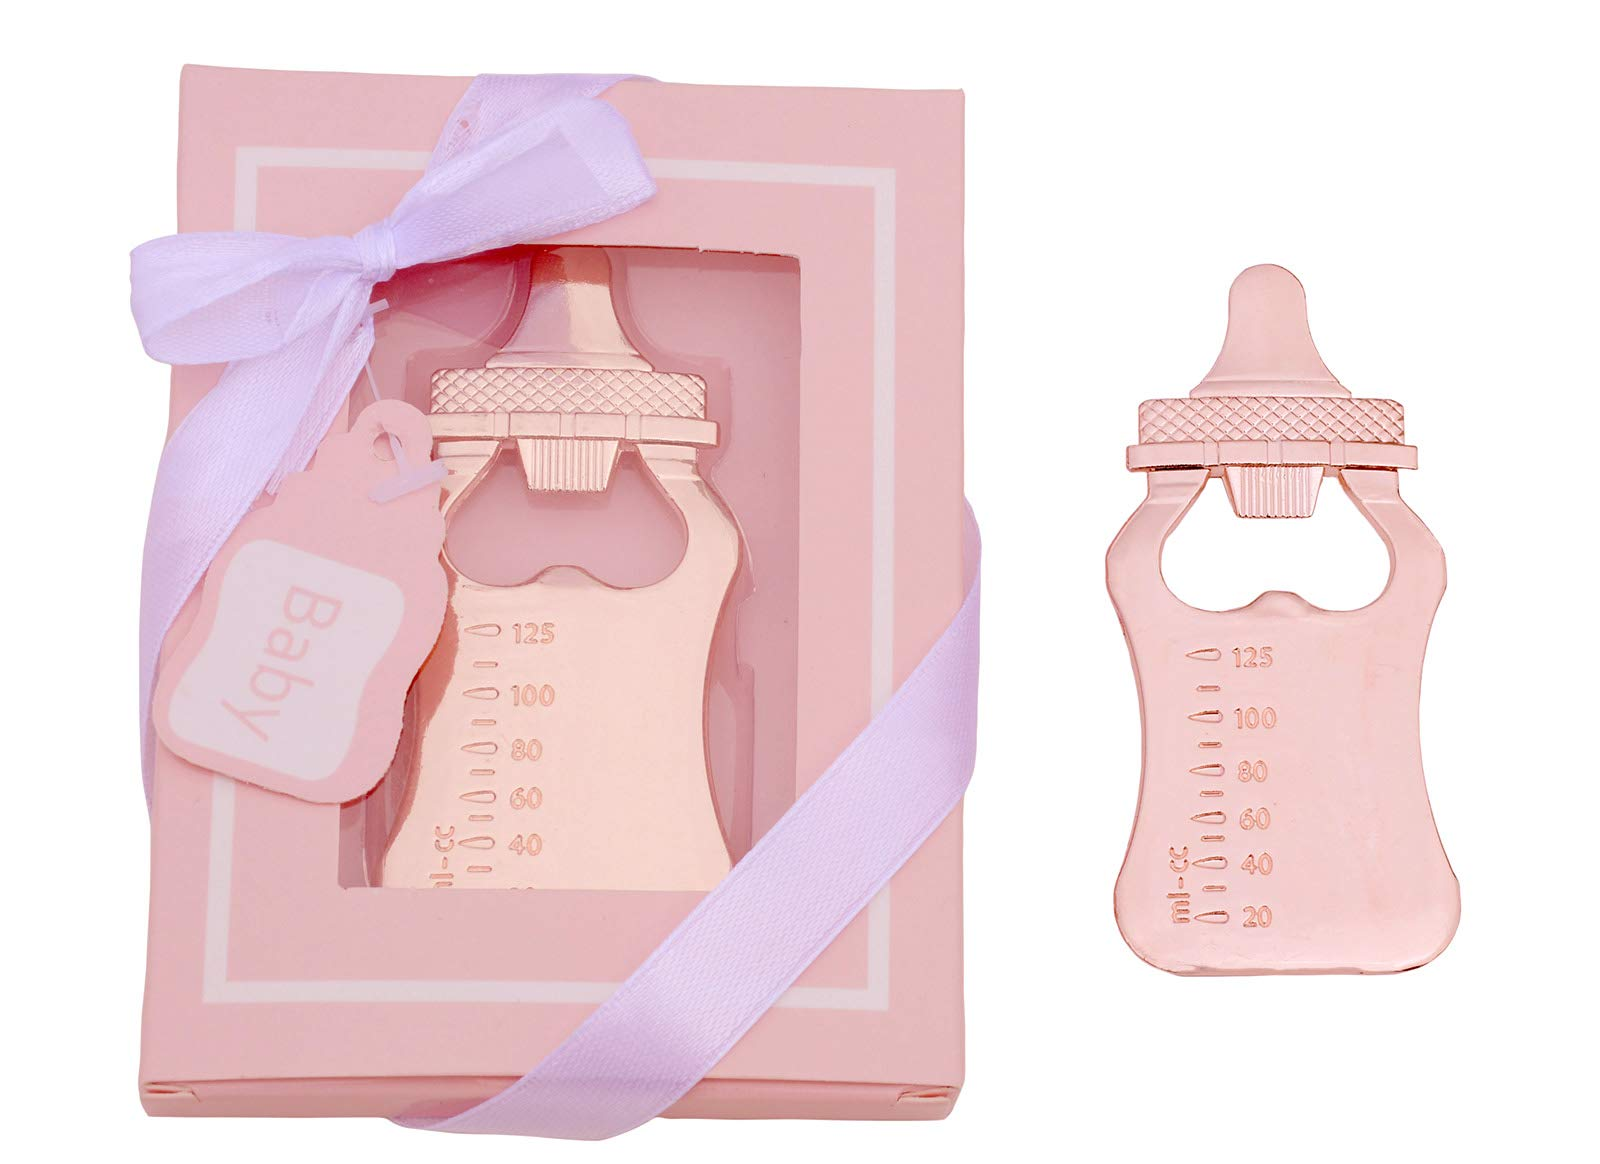 YYaaloa 24pcs Baby Bottle Shapped Bottle Openers Baby Shower Return Gifts Wedding Favors for Guests Party Favors (New Pink 24pack) by YYaaloa